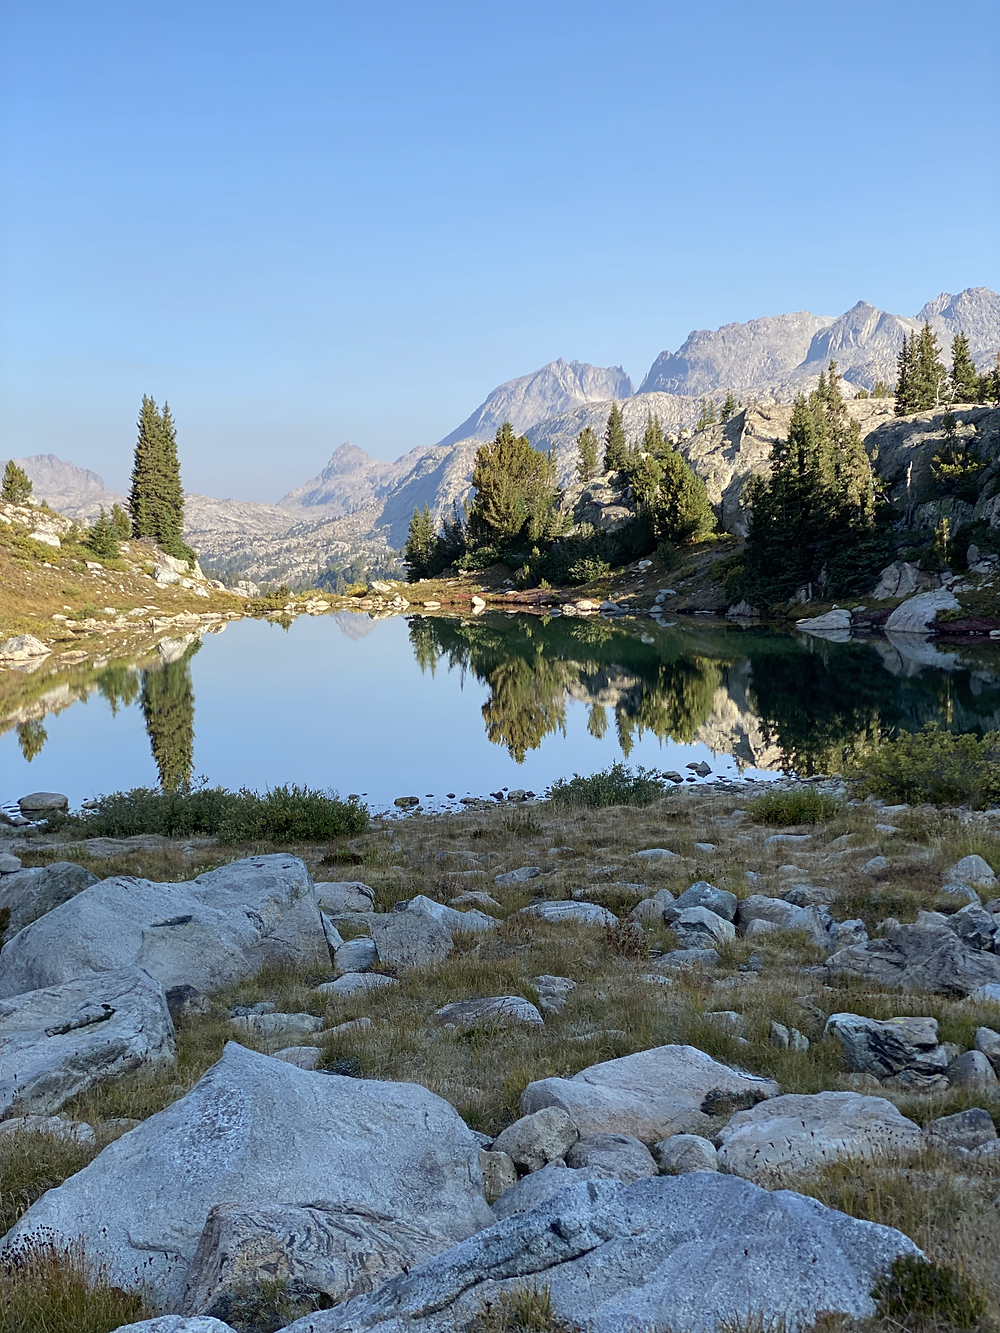 I feel these alt text snippets are getting rather repetitive, but every picture is a beautiful representation of a reflective mirror lake surrounded by mountains at Bridger-Teton National Forest in Wyoming